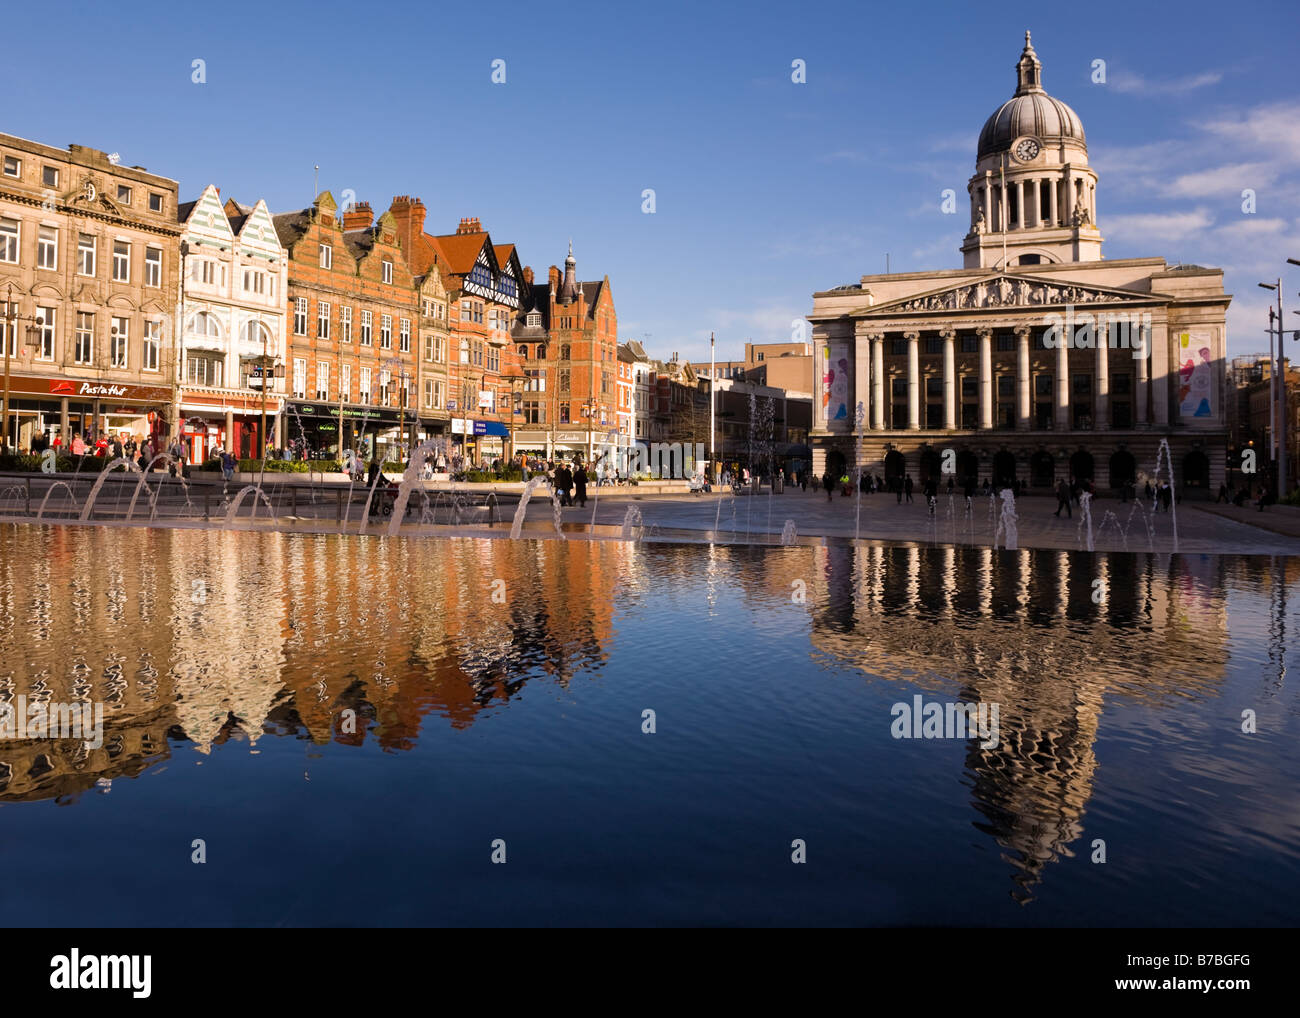 nottingham-city-hall-and-shops-in-the-ma